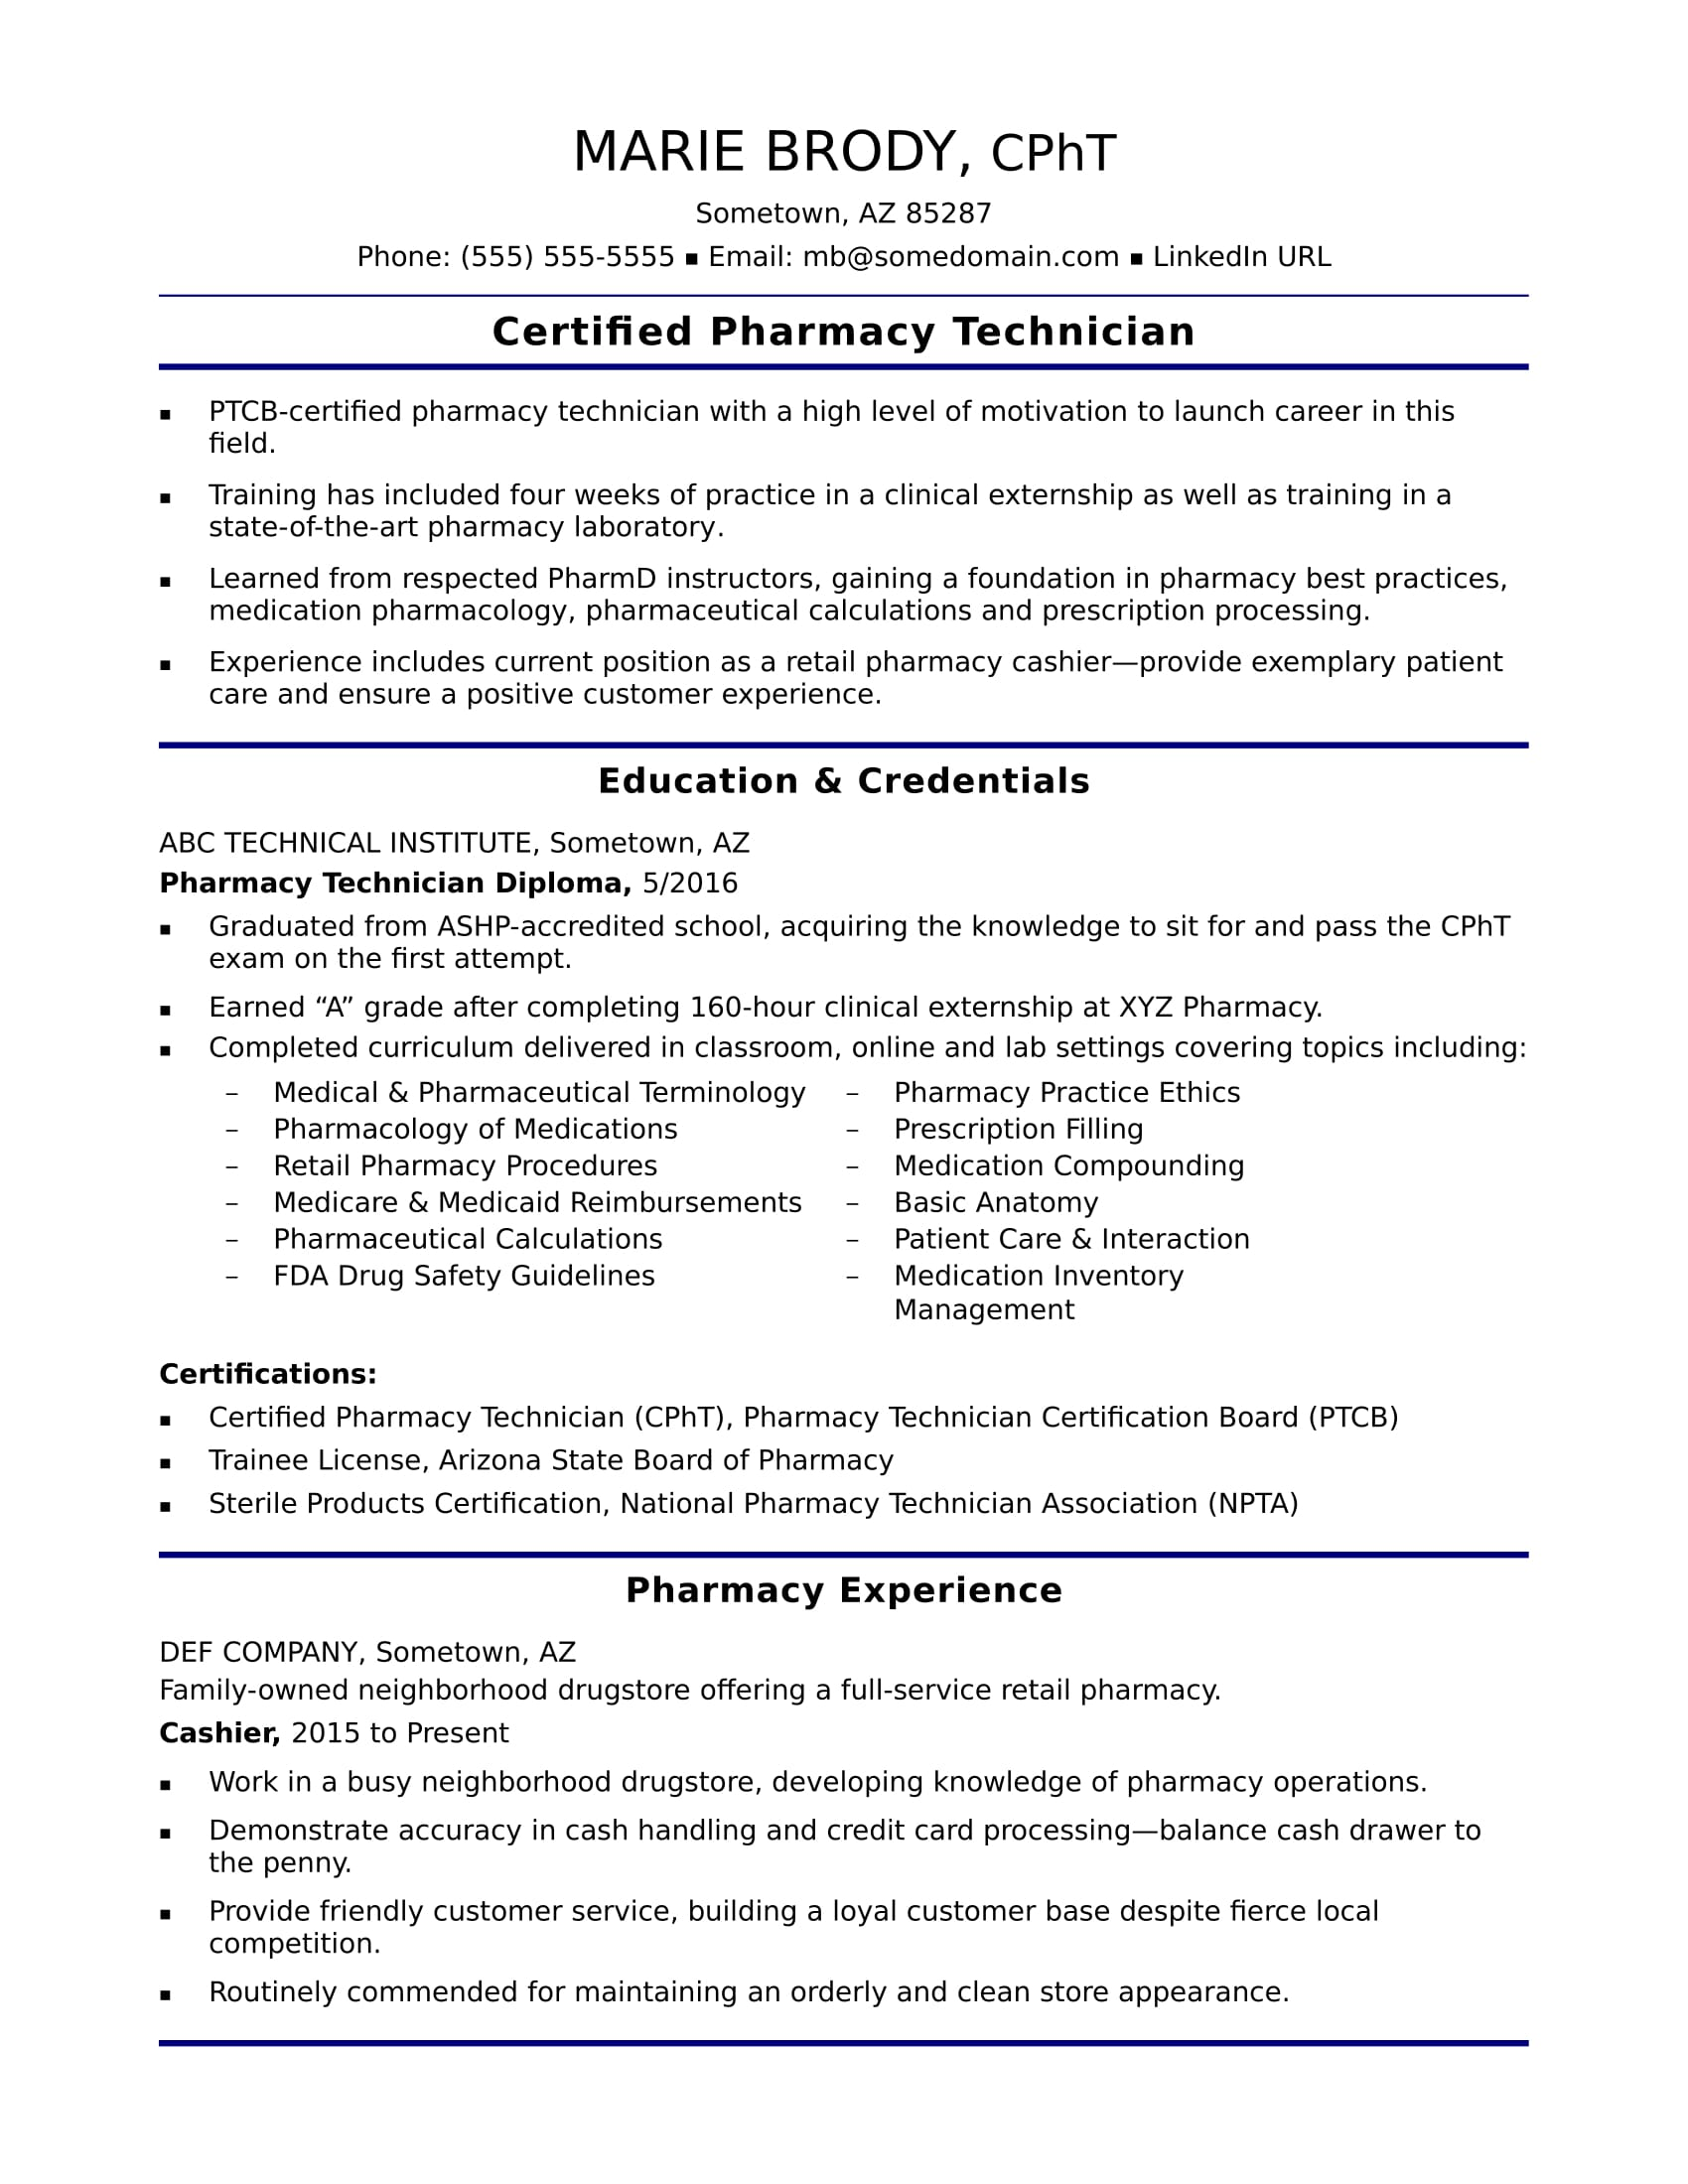 Charming Sample Resume For An Entry Level Pharmacy Technician Inside Pharmacy Tech Resumes